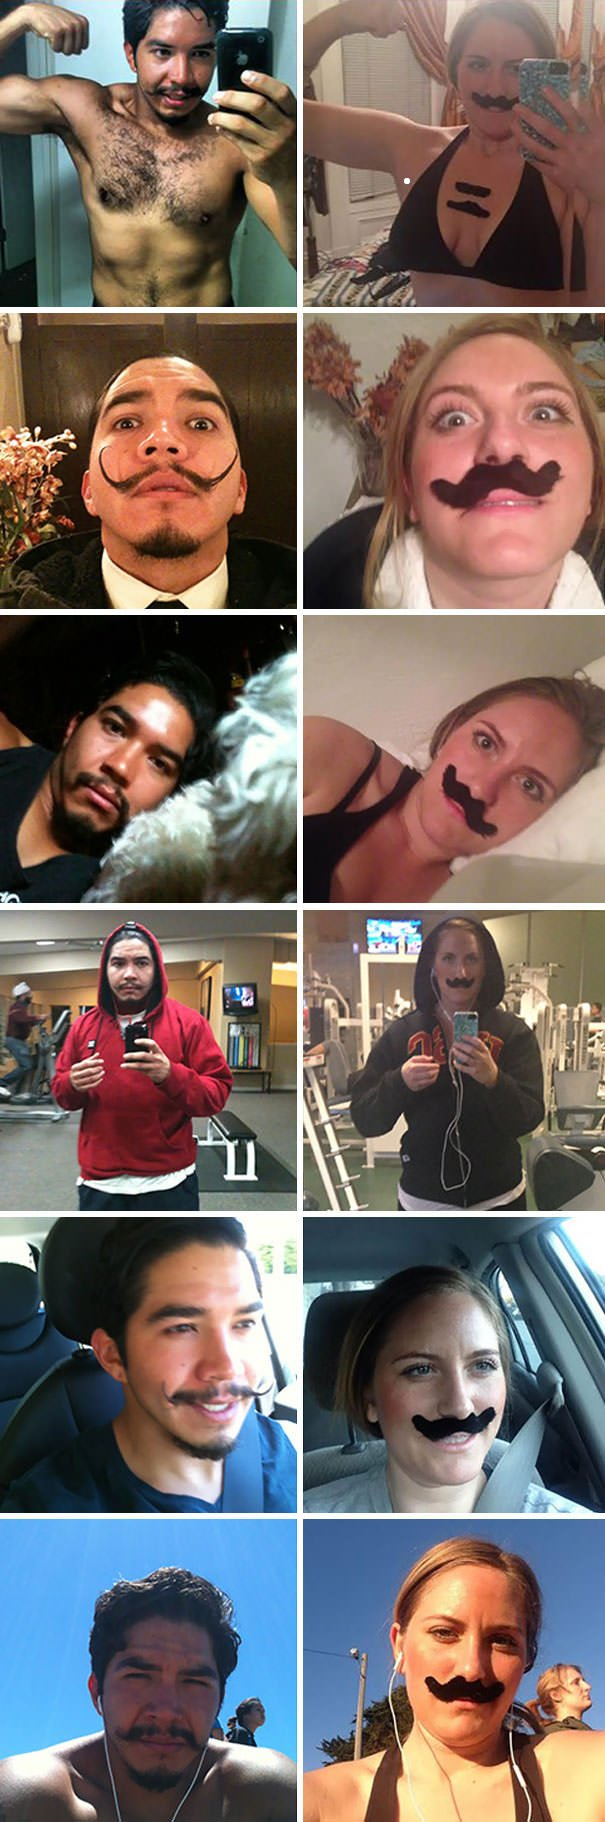 On January 1, 2013 My Phone Escaped Me And Somehow Fell Into The Hands Of A Man With A Killer Mustache. Thanks To Apple And Some Kinks In The Cloud, I Receive All Of His Pictures In My Photo Stream. Here Are His Selfies As Re-Enacted By Yours Truly